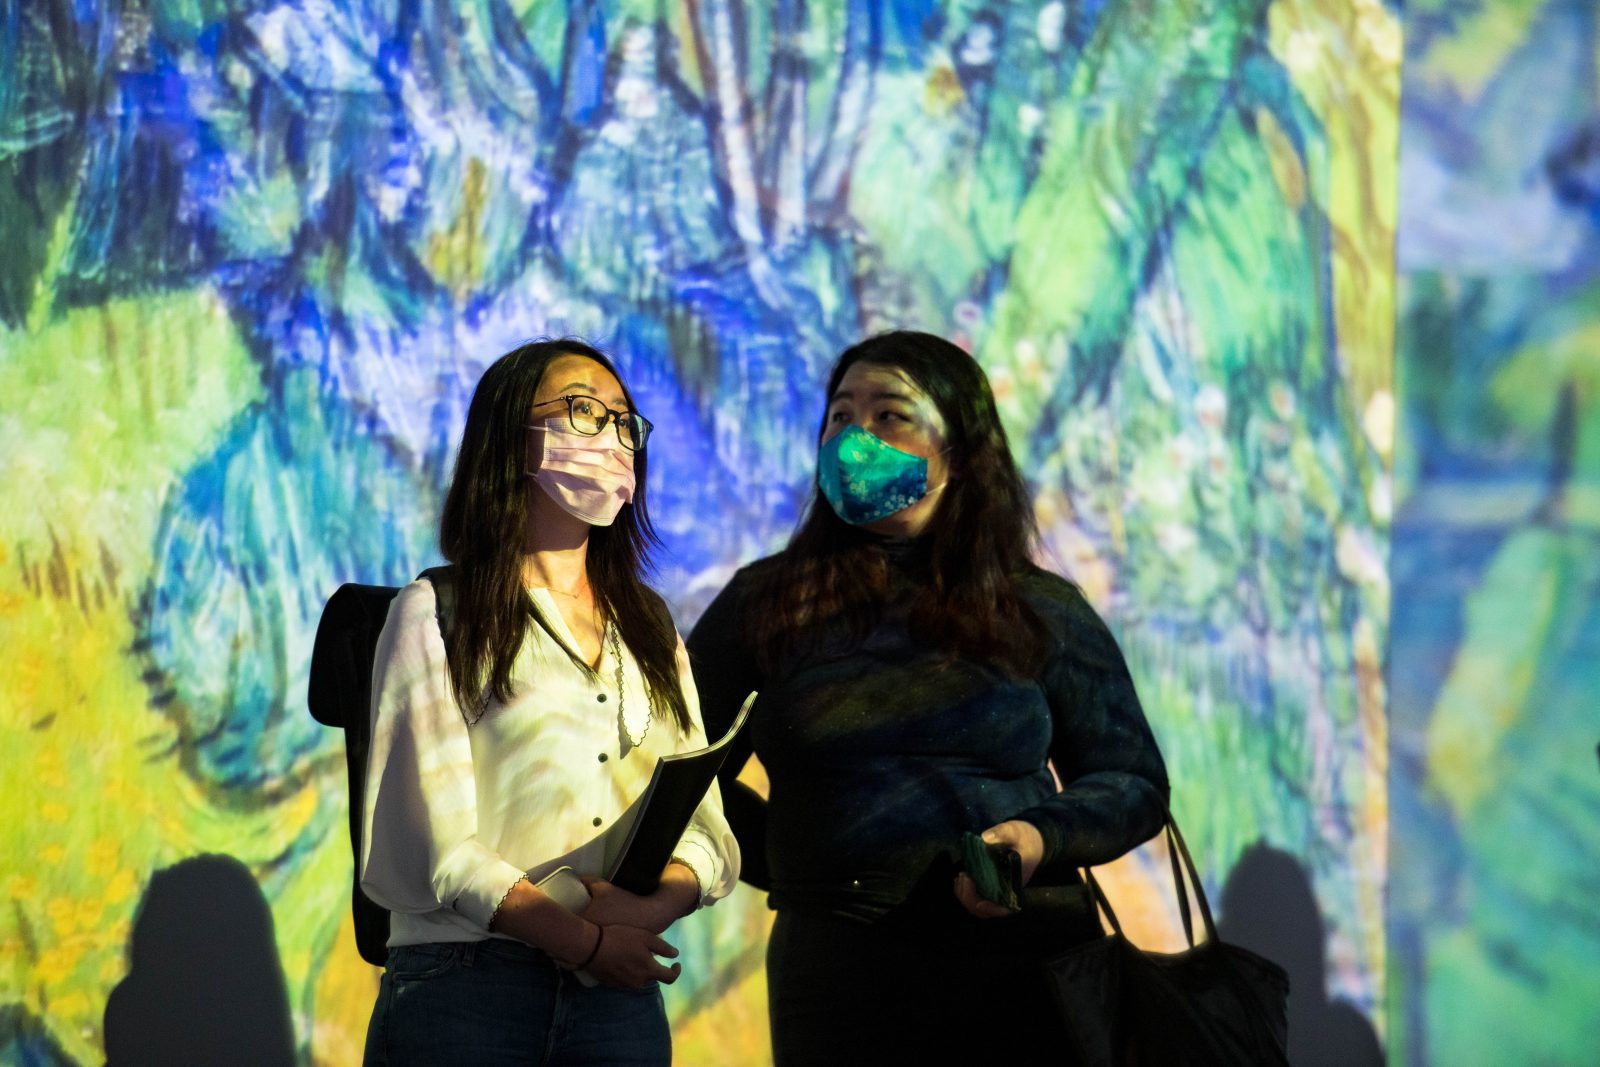 There's loads for kids to do when Van Gogh Alive arrives at MediaCityUK this month, The Manc